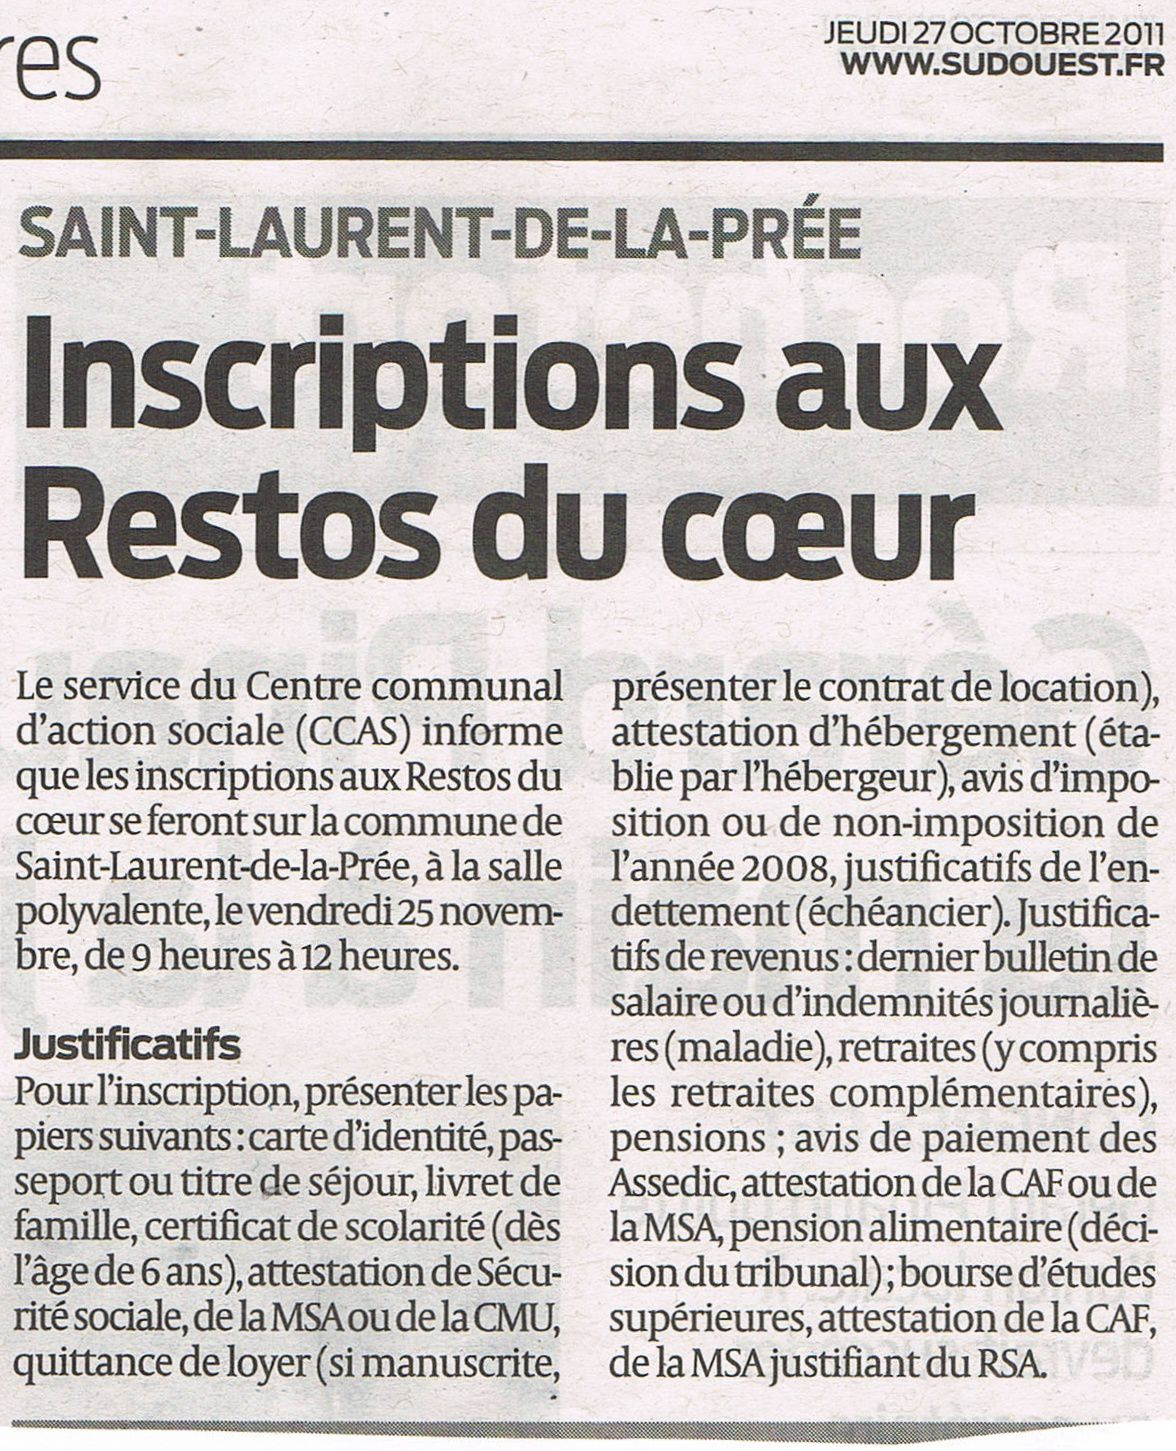 art.SO-du-27-oct.-2011.-Inscriptions-Restos-du-coeur.jpg